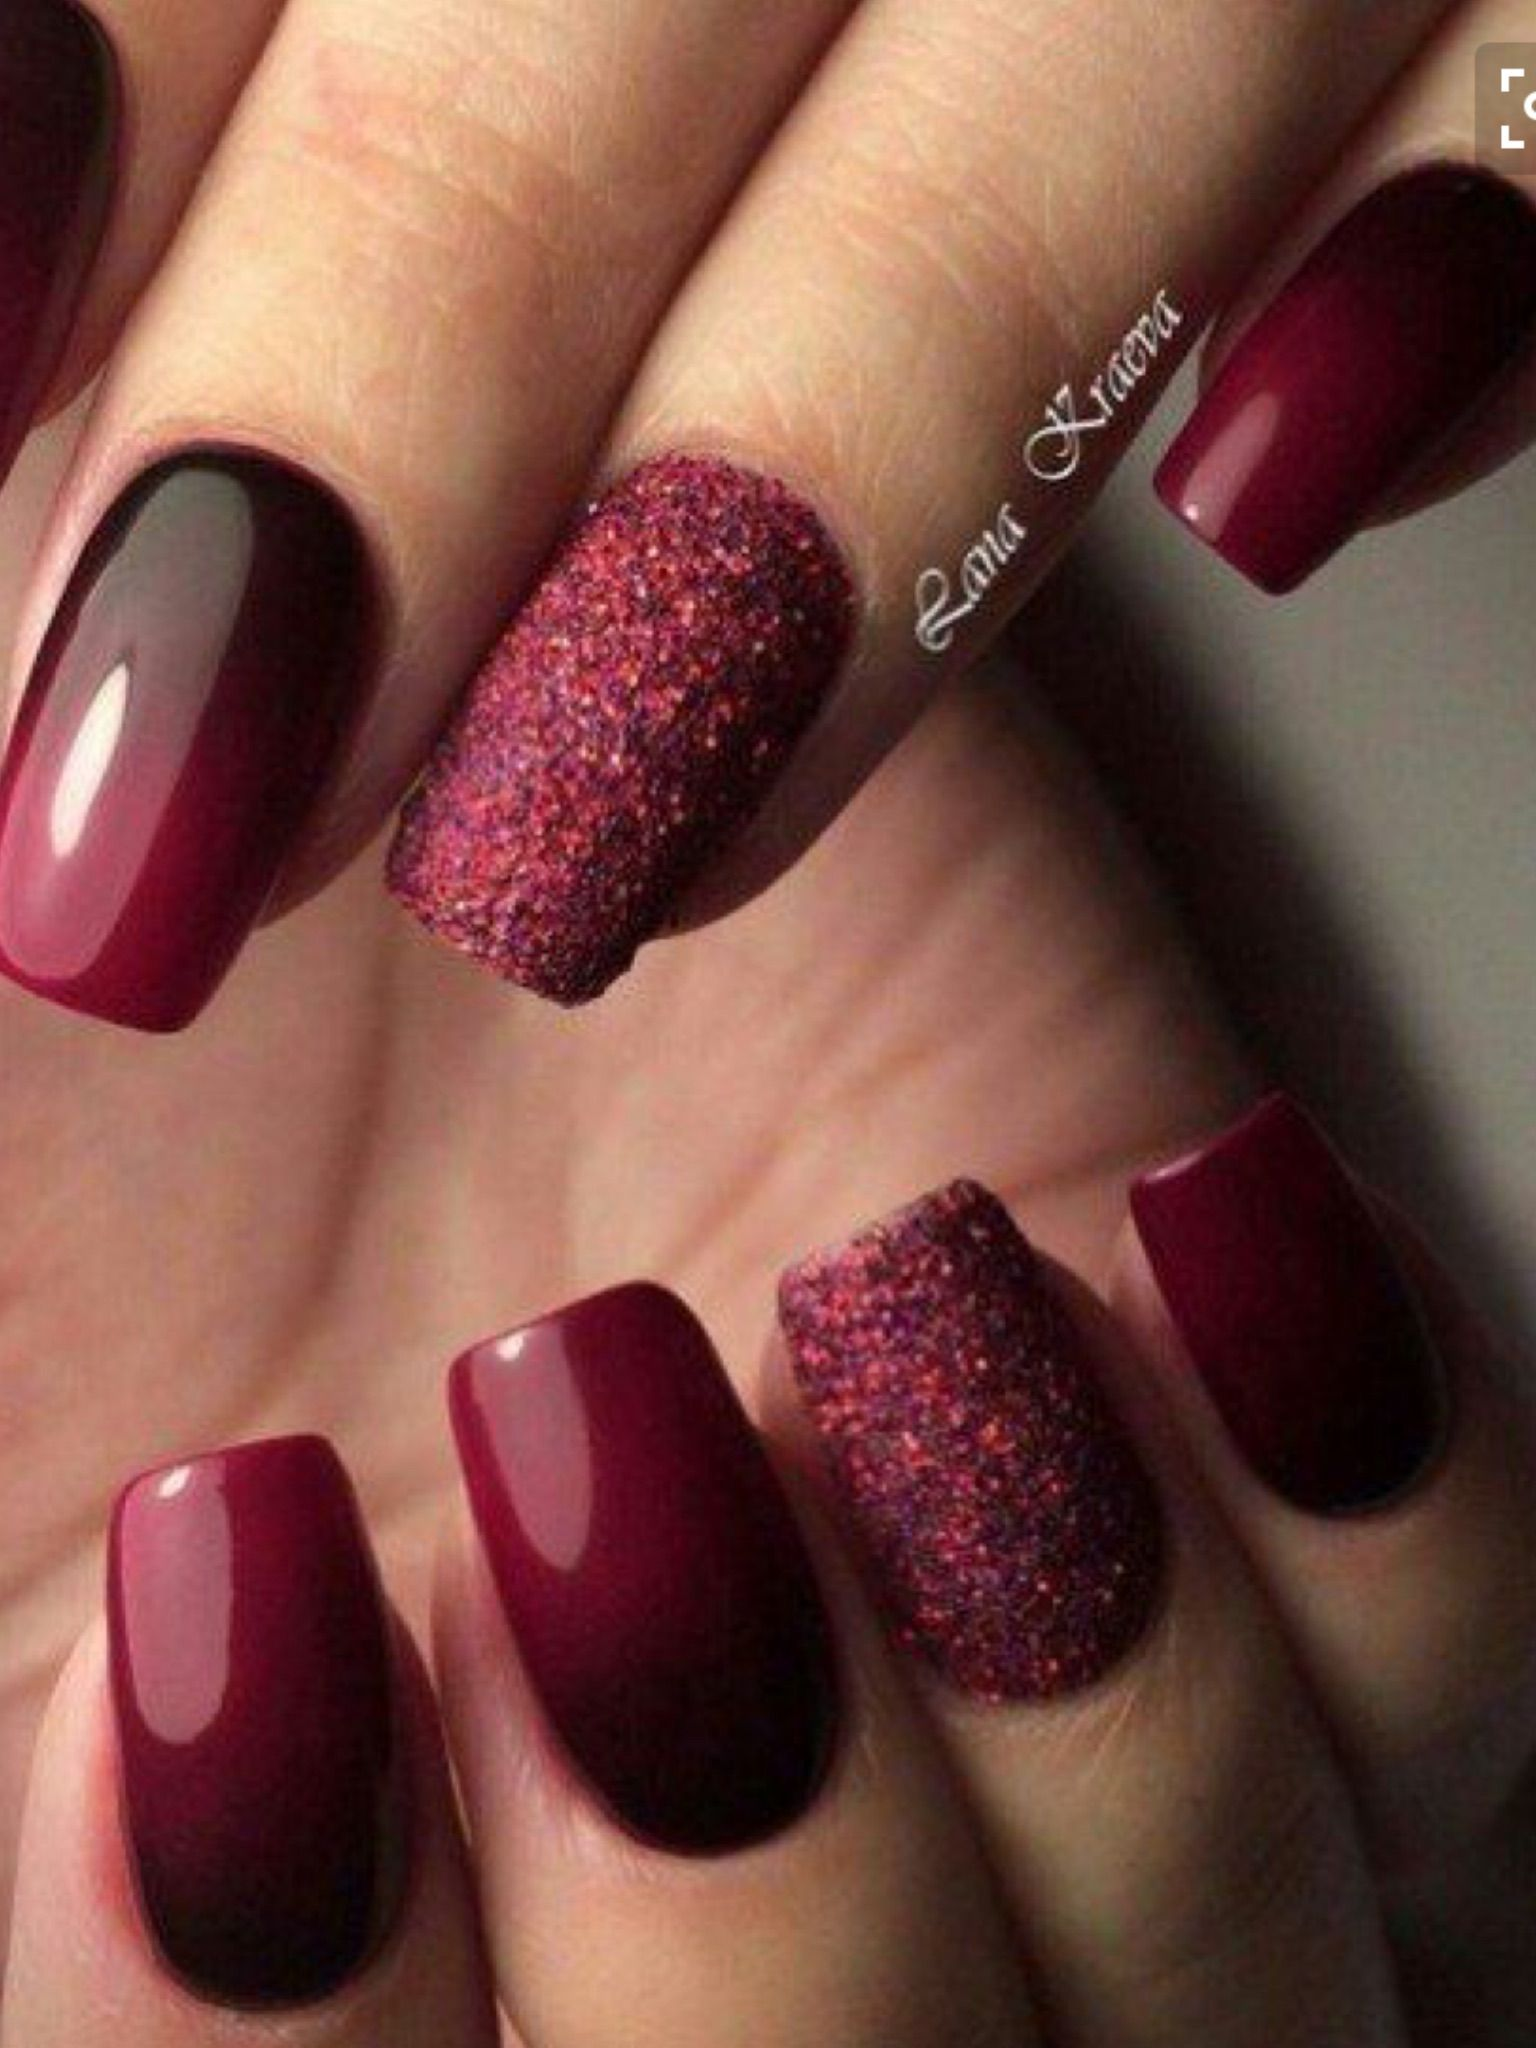 Pin By Vanessa Day On Nails Manicure Nail Designs Nail Art Ombre Burgundy Nails